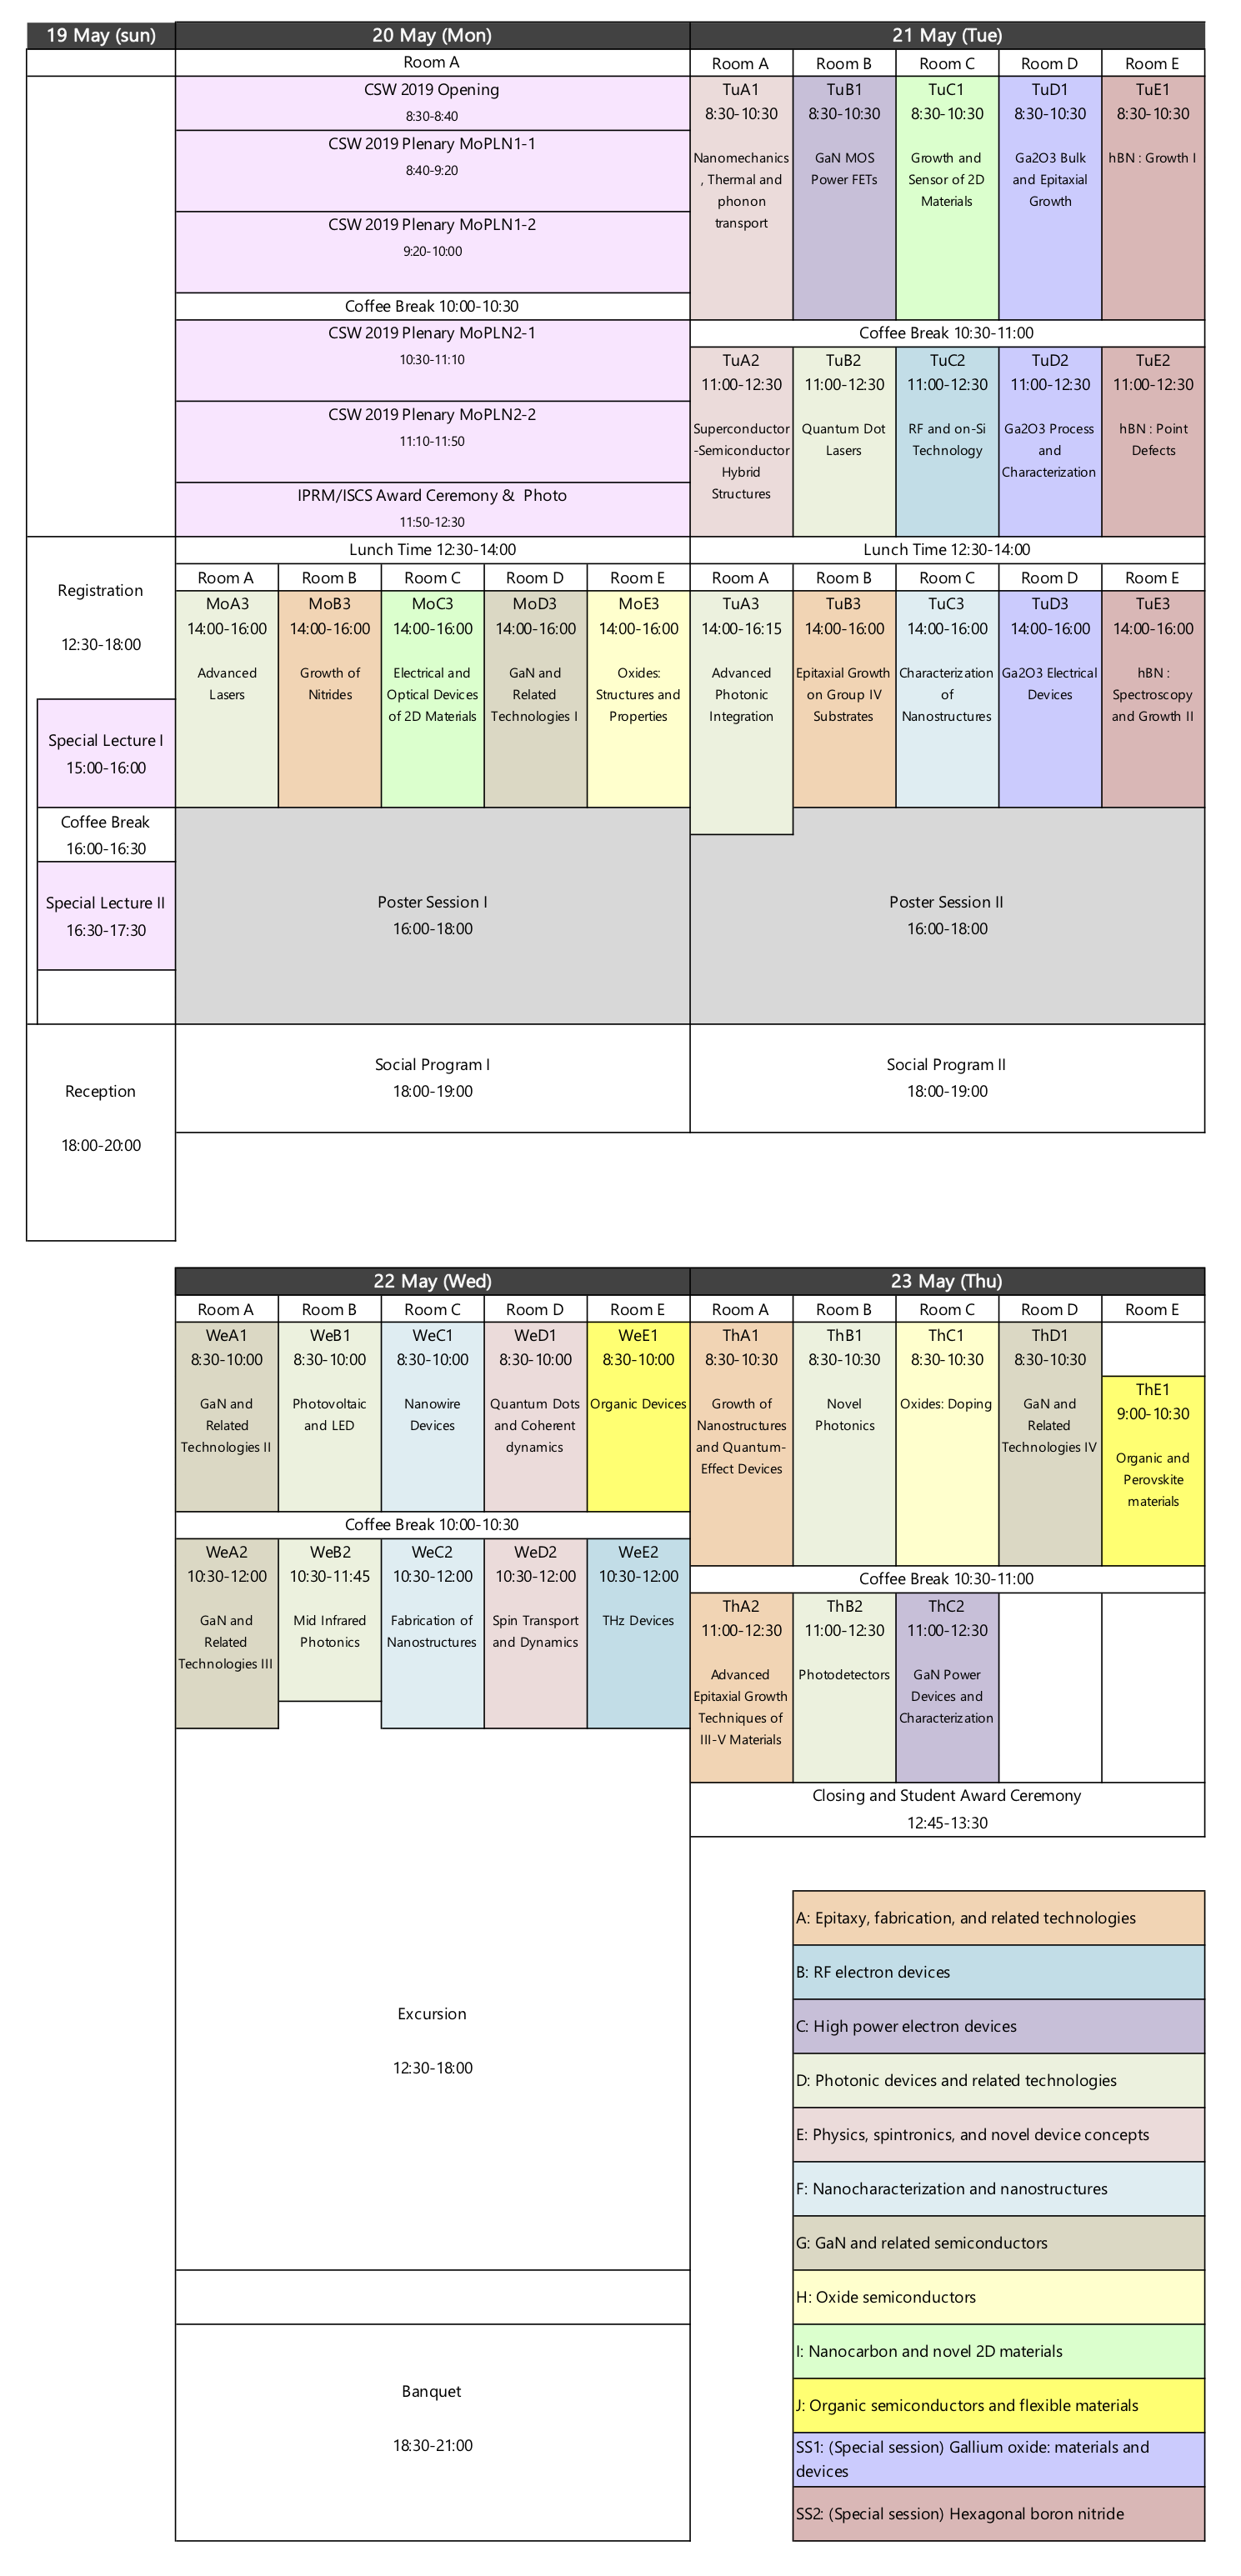 CSW2019_program-at-a-glance61